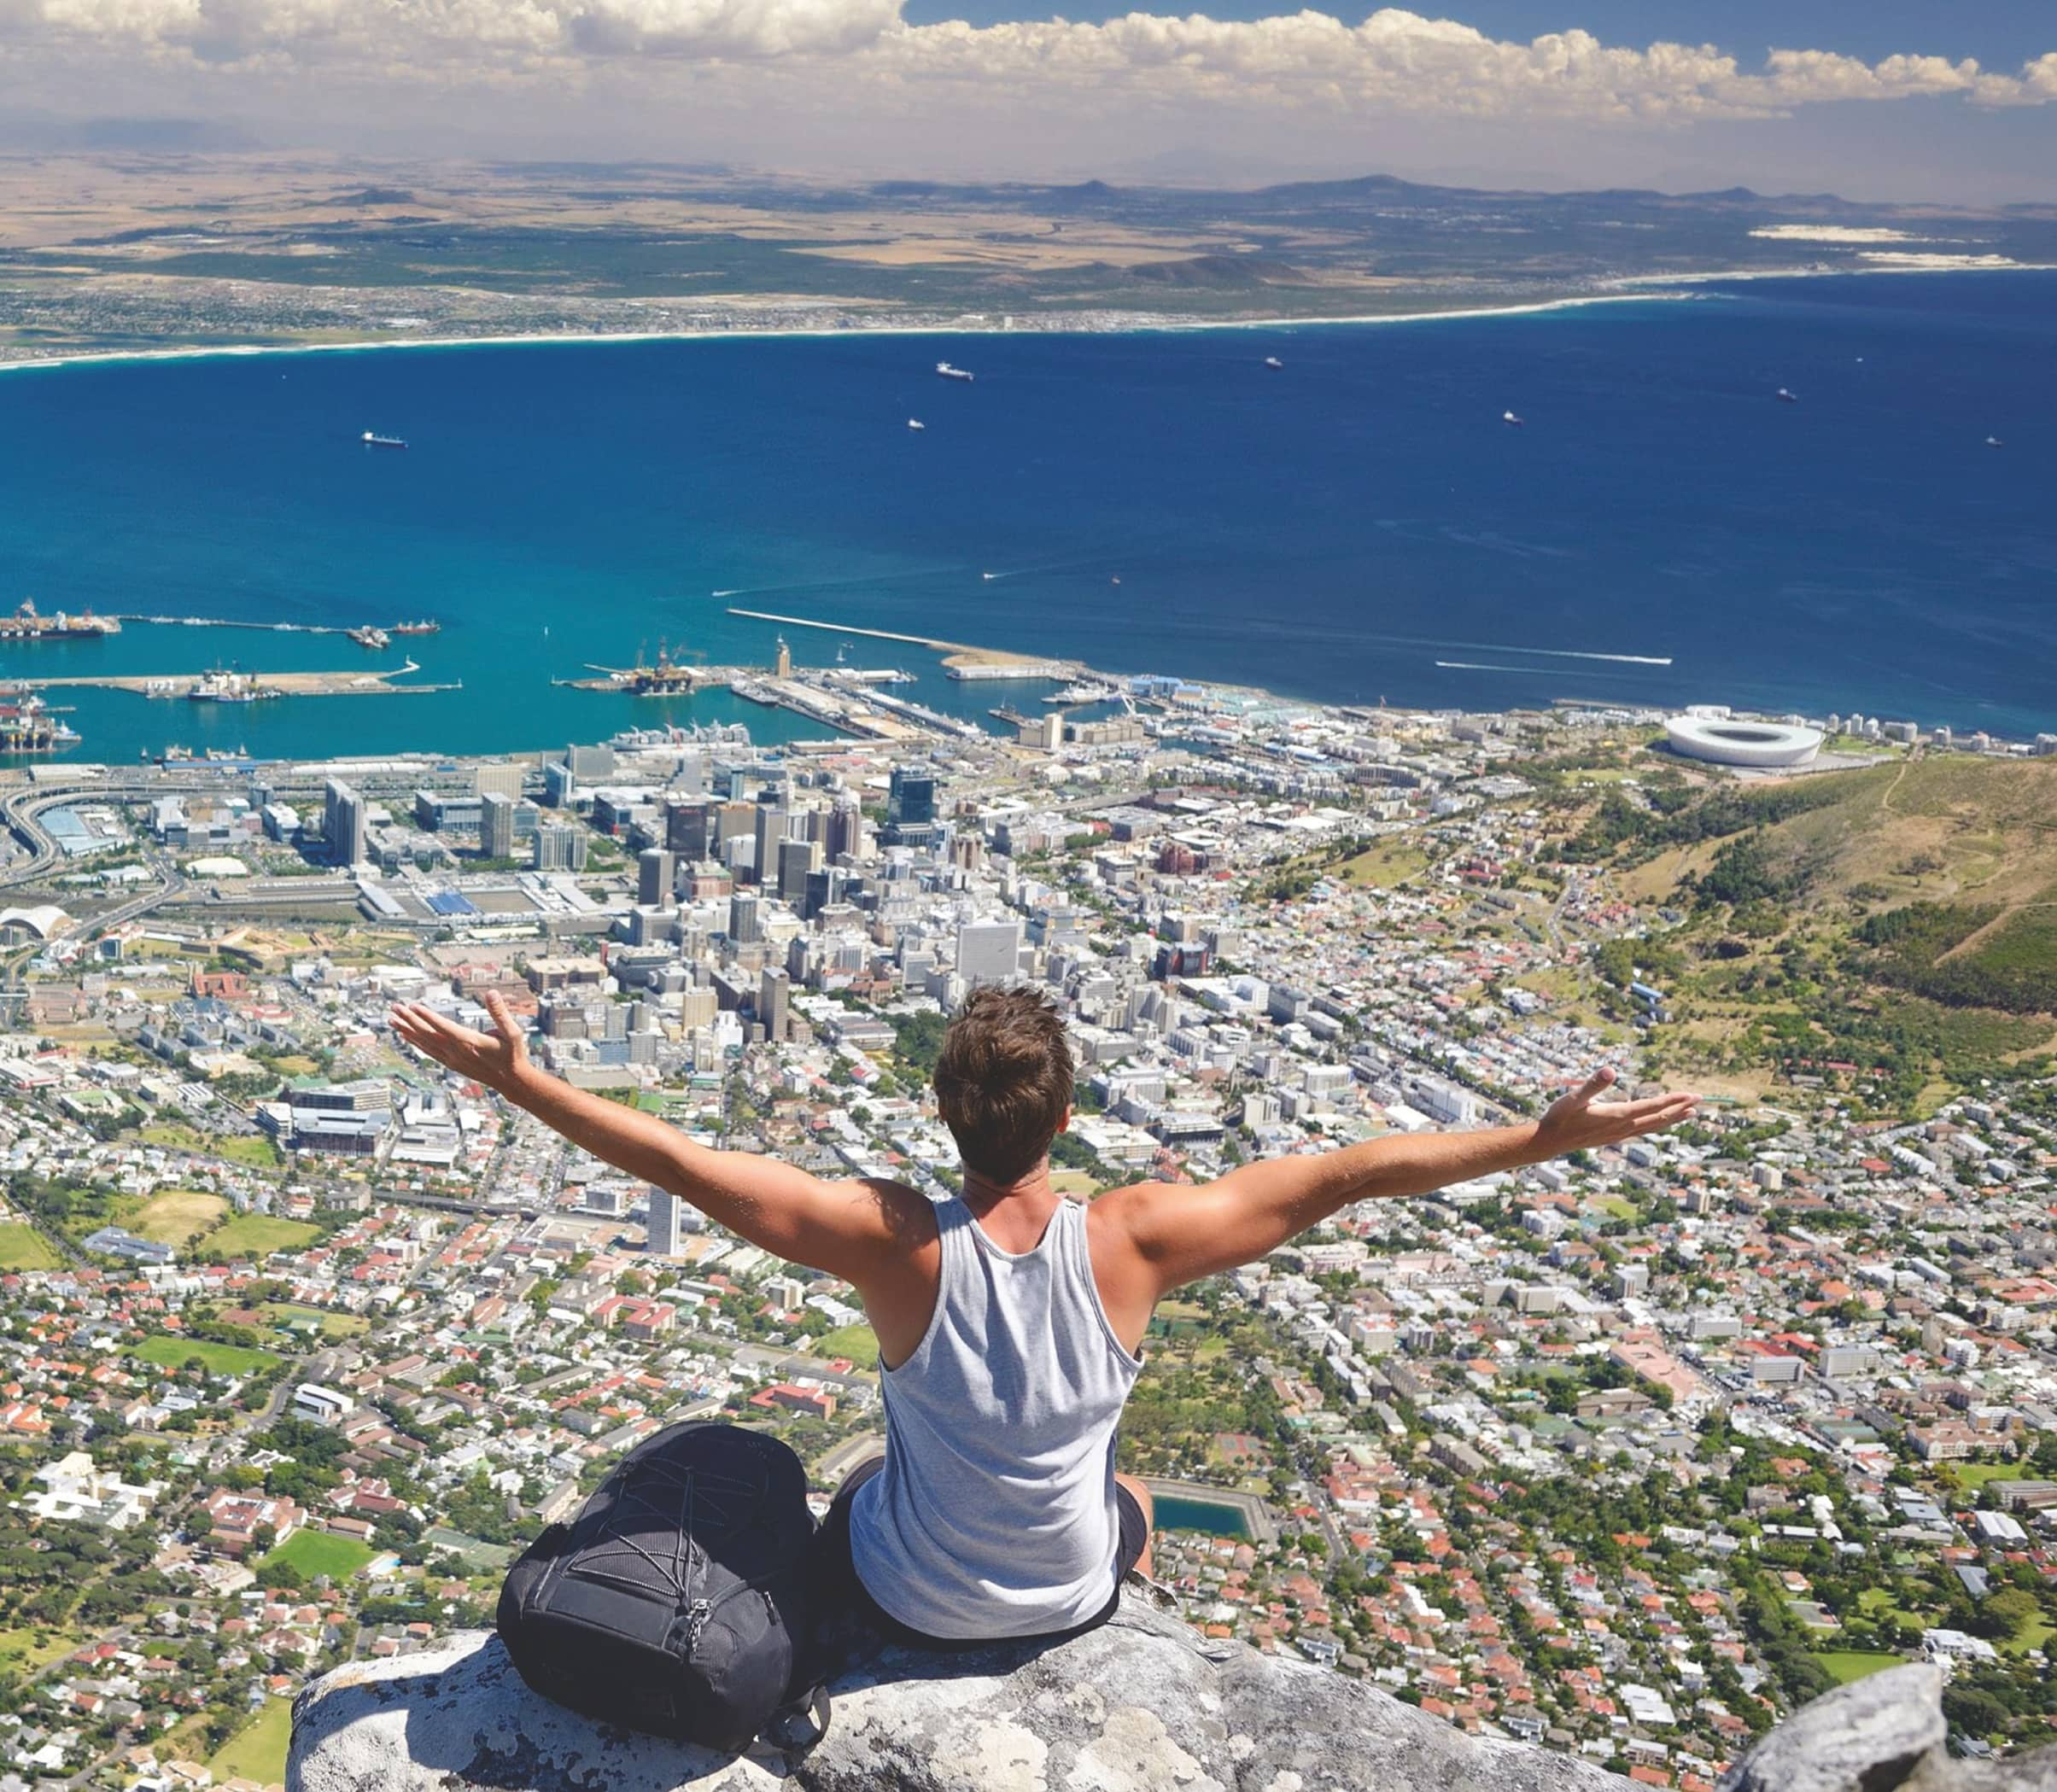 SOUTH AFRICA'S TOURISM INDUSTRY PREPAREDNESS FOR POST COVID ERA